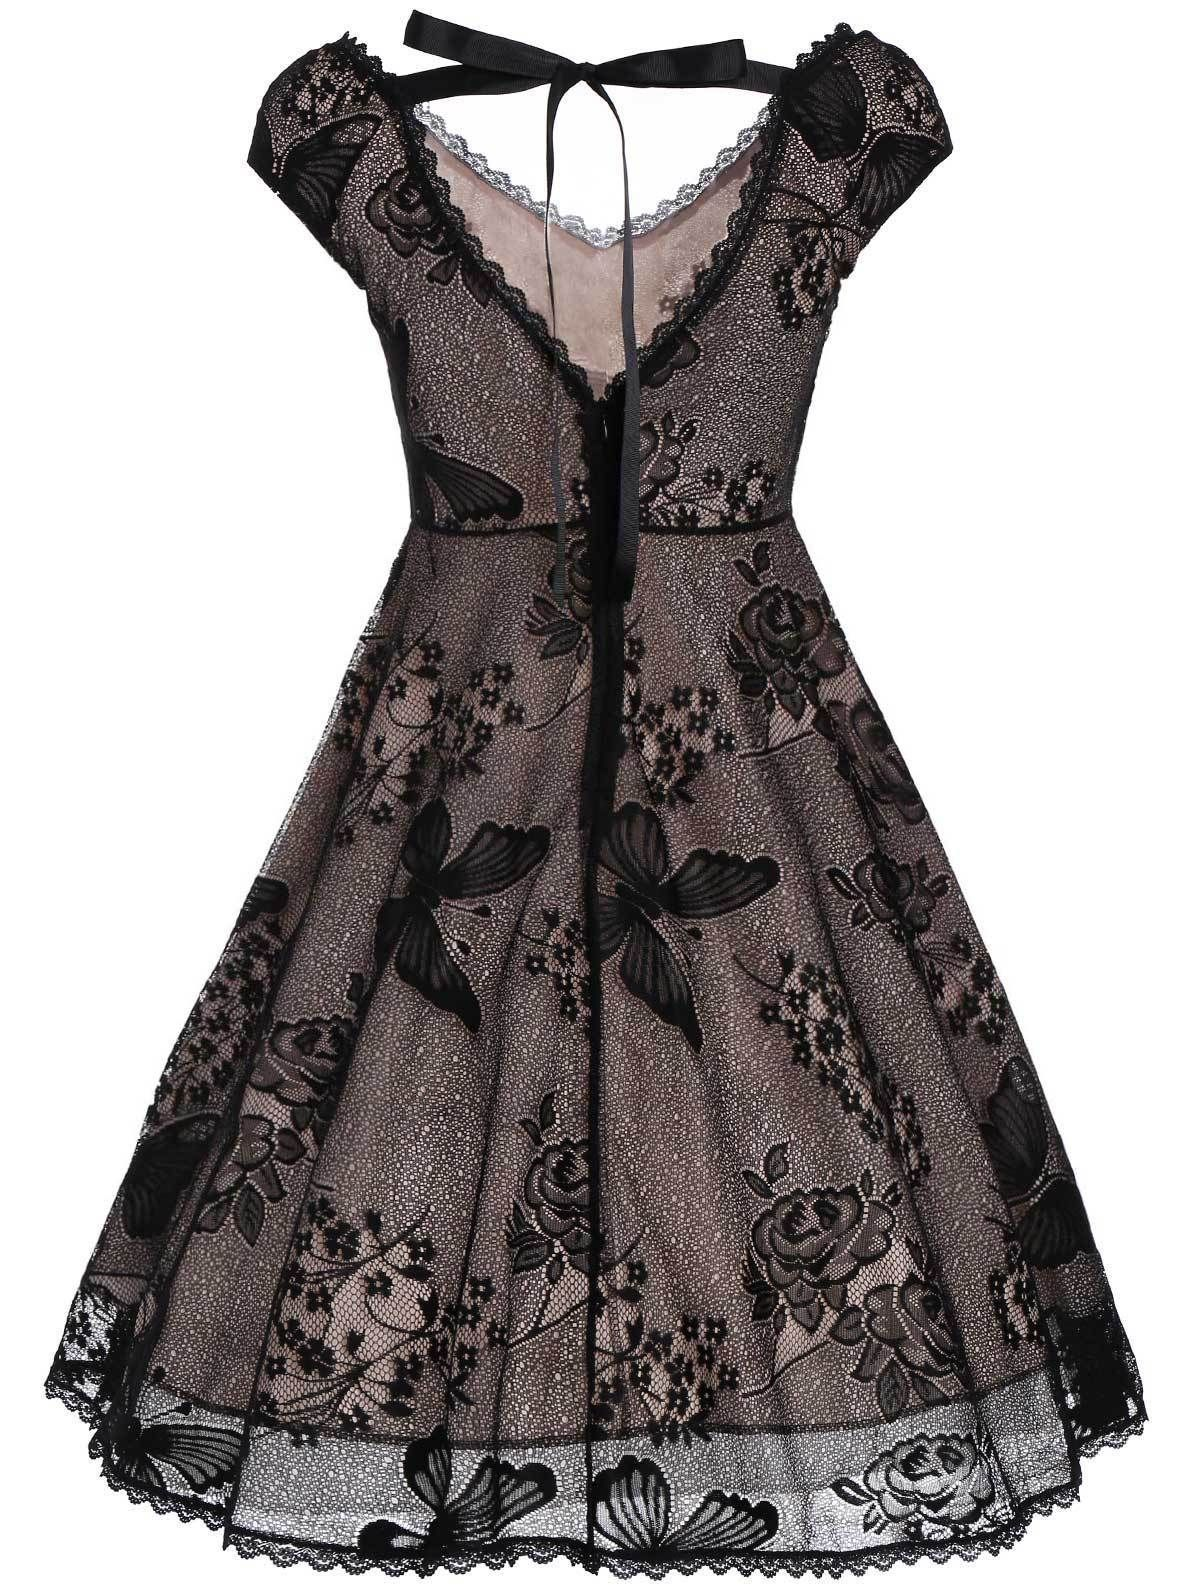 6e587e37b55 Buy Black Butterfly Lace Dress at Anarchicfashion.com for only ...